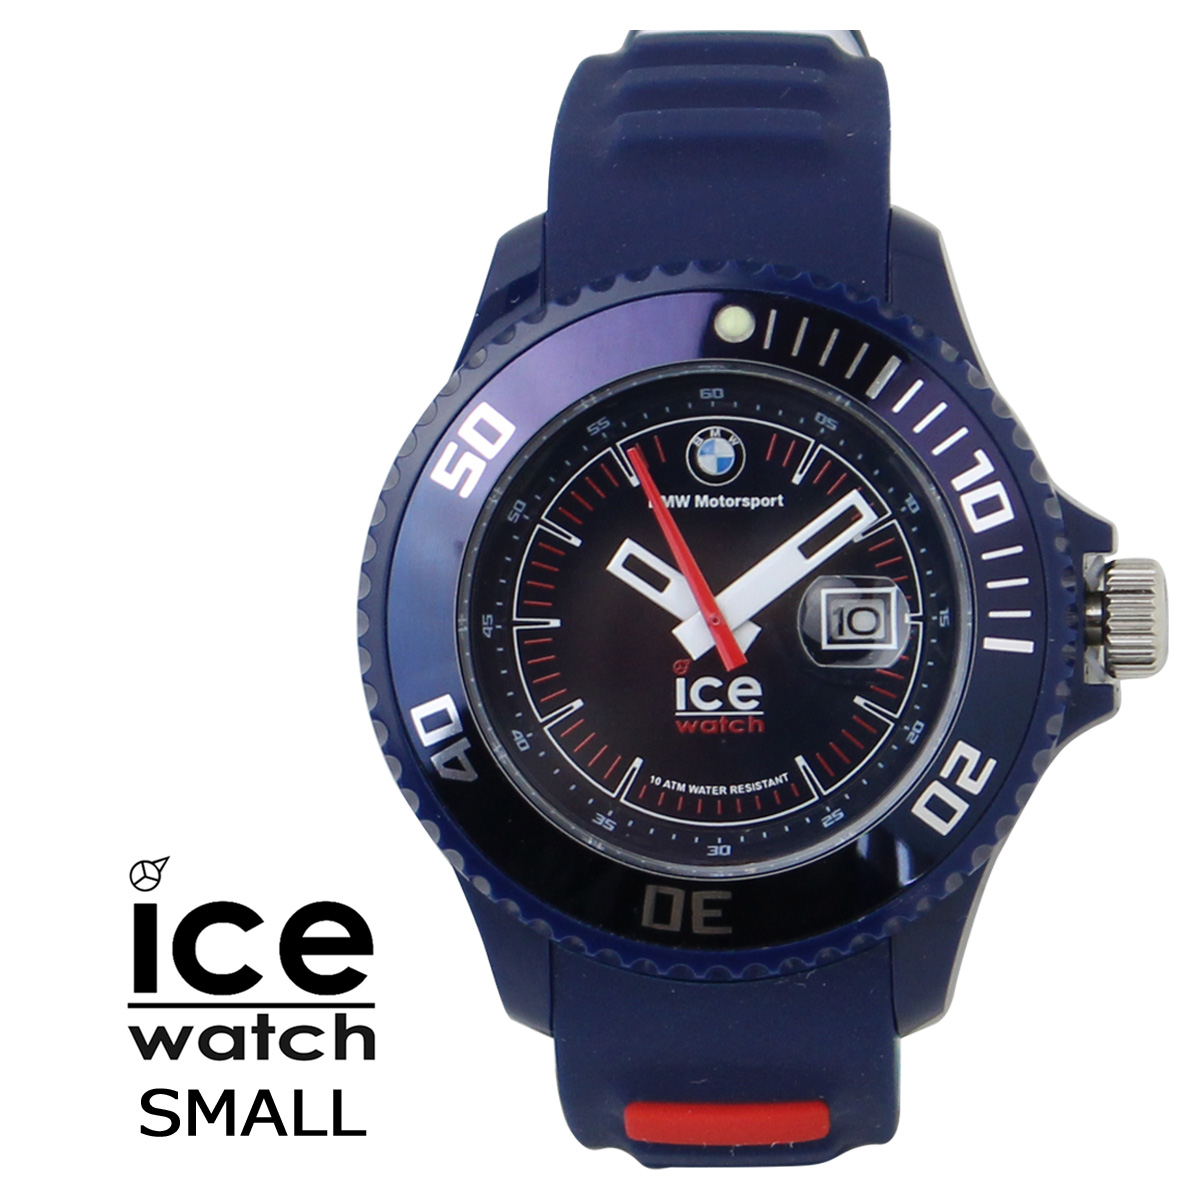 [SOLD OUT]冰表ICE-WATCH手表BMW MOTORSPORT SMALL 38mm BM.SI.DBE.S.S.13女子[对象外]